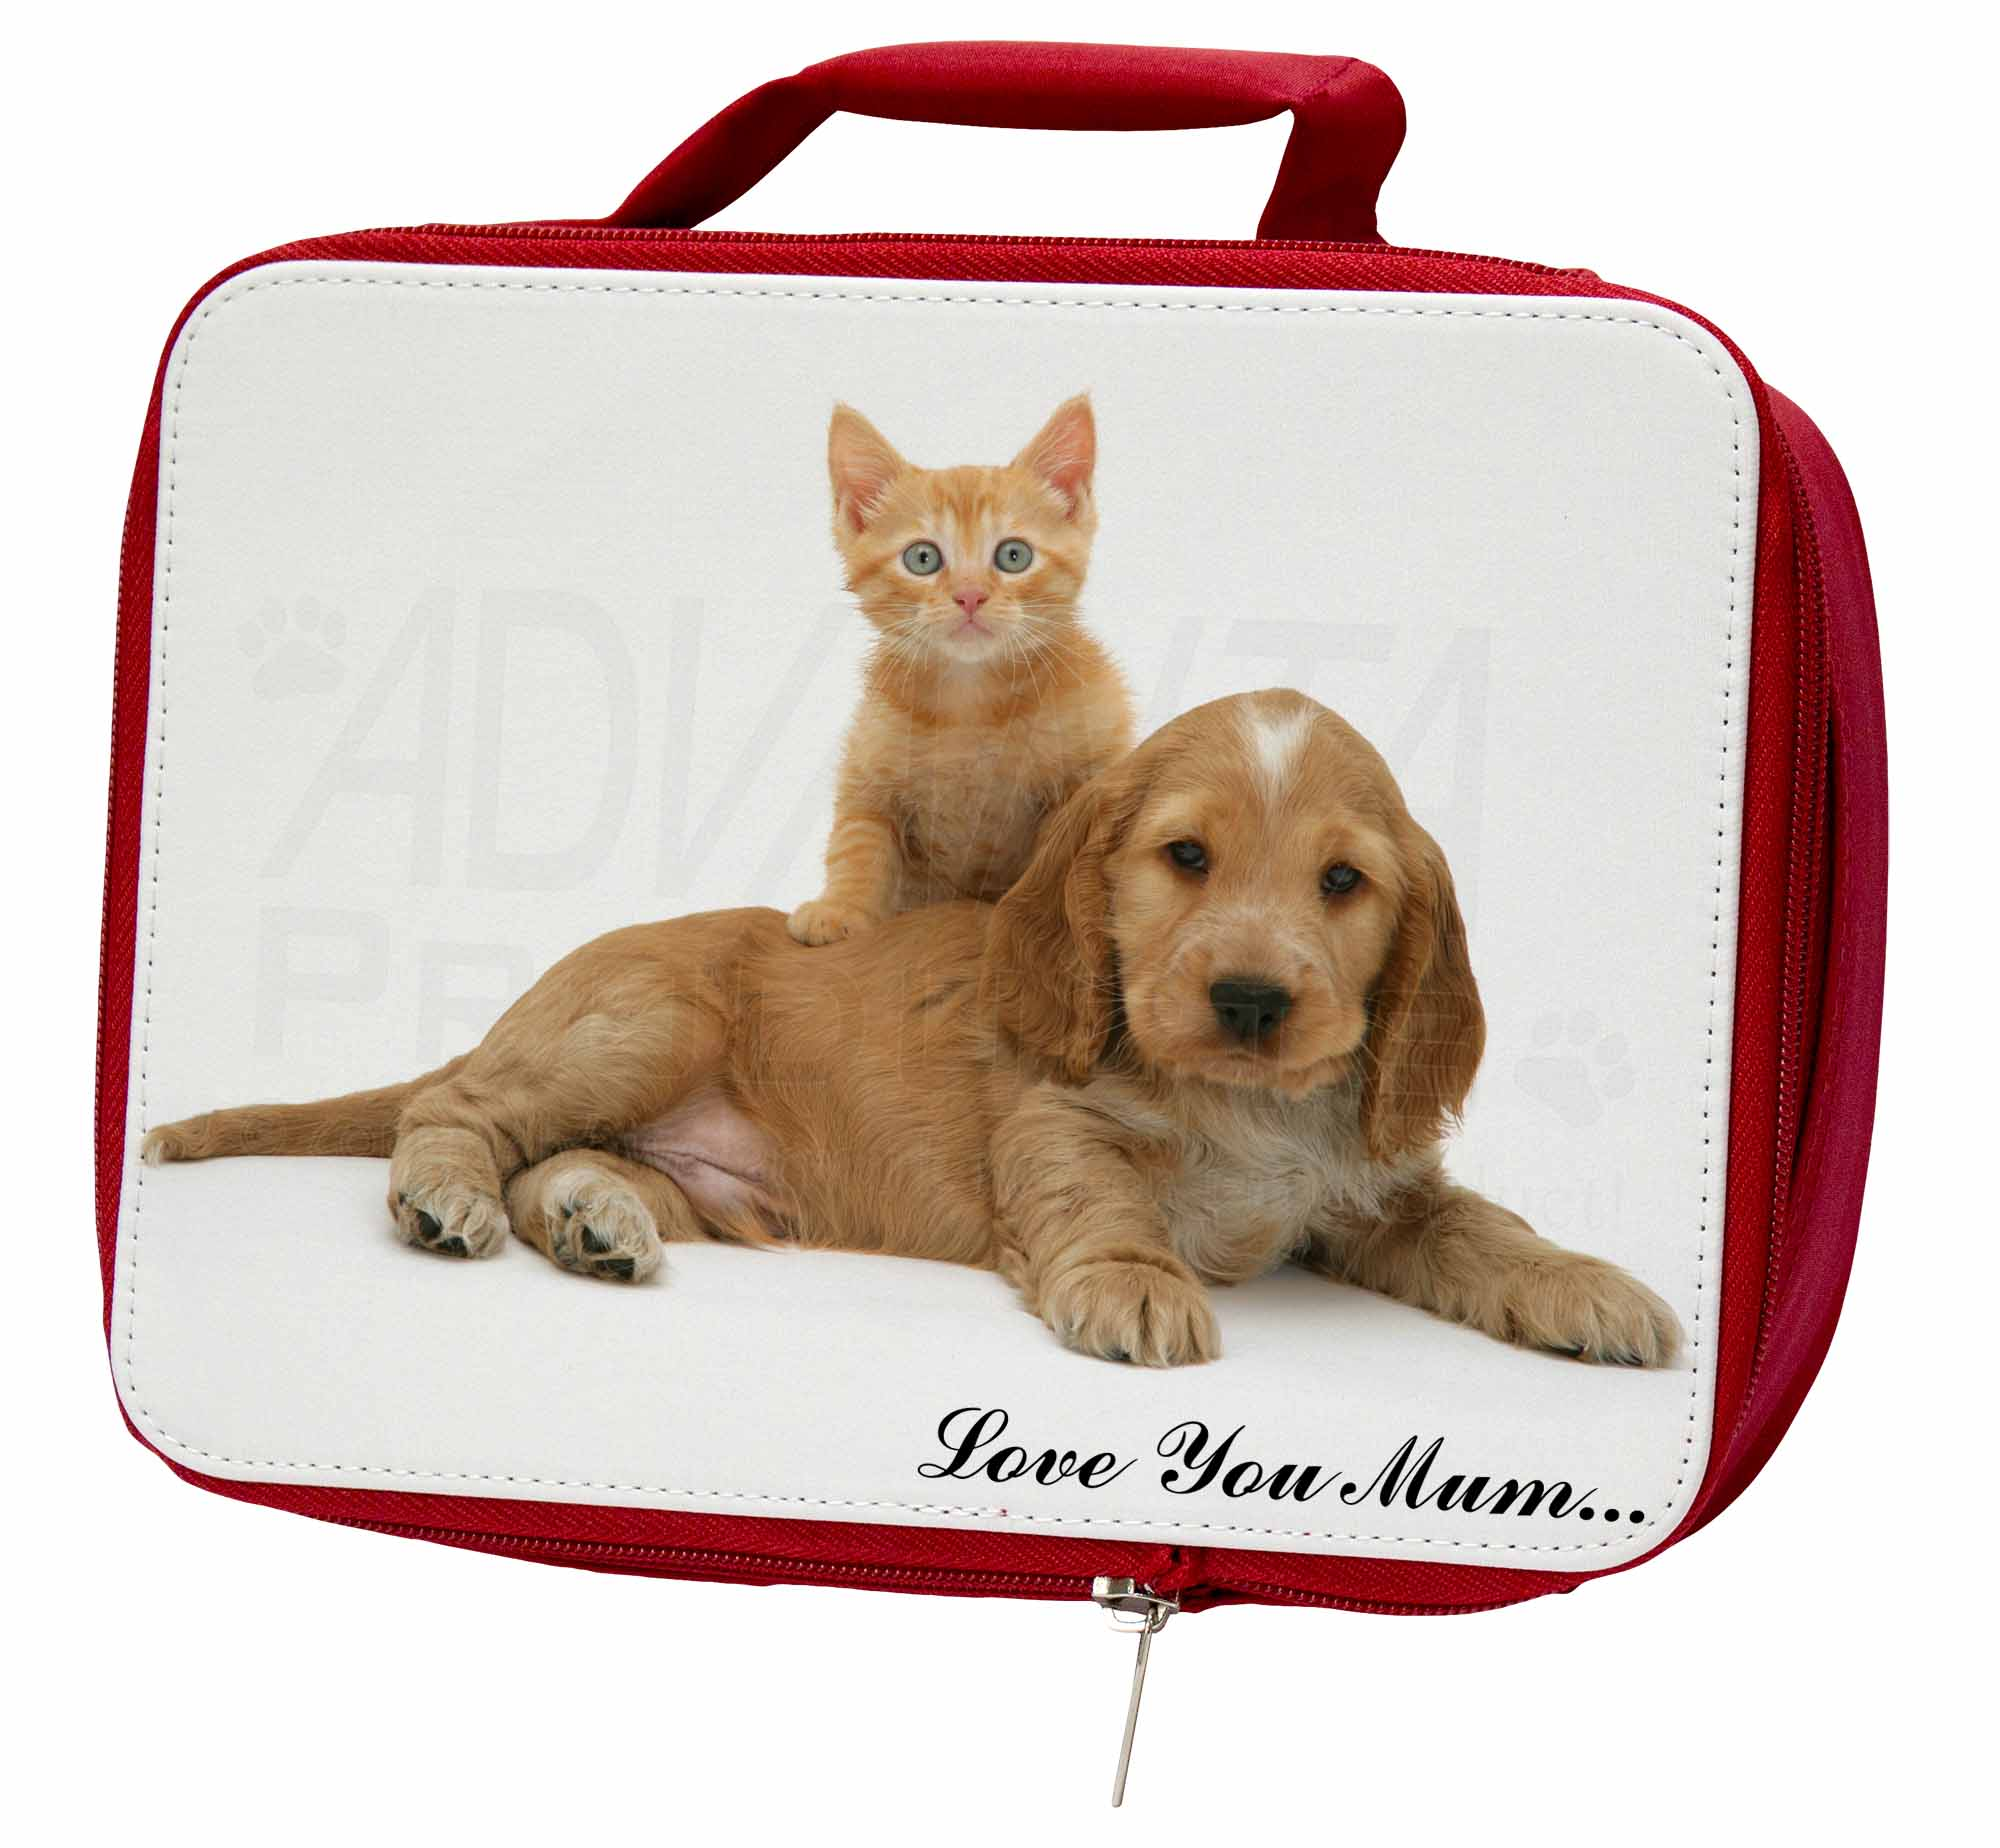 Puppy and Kitten 'Love You Mum' Insulated Red School Lunch Box/Pi, AD-SC14lymLBR